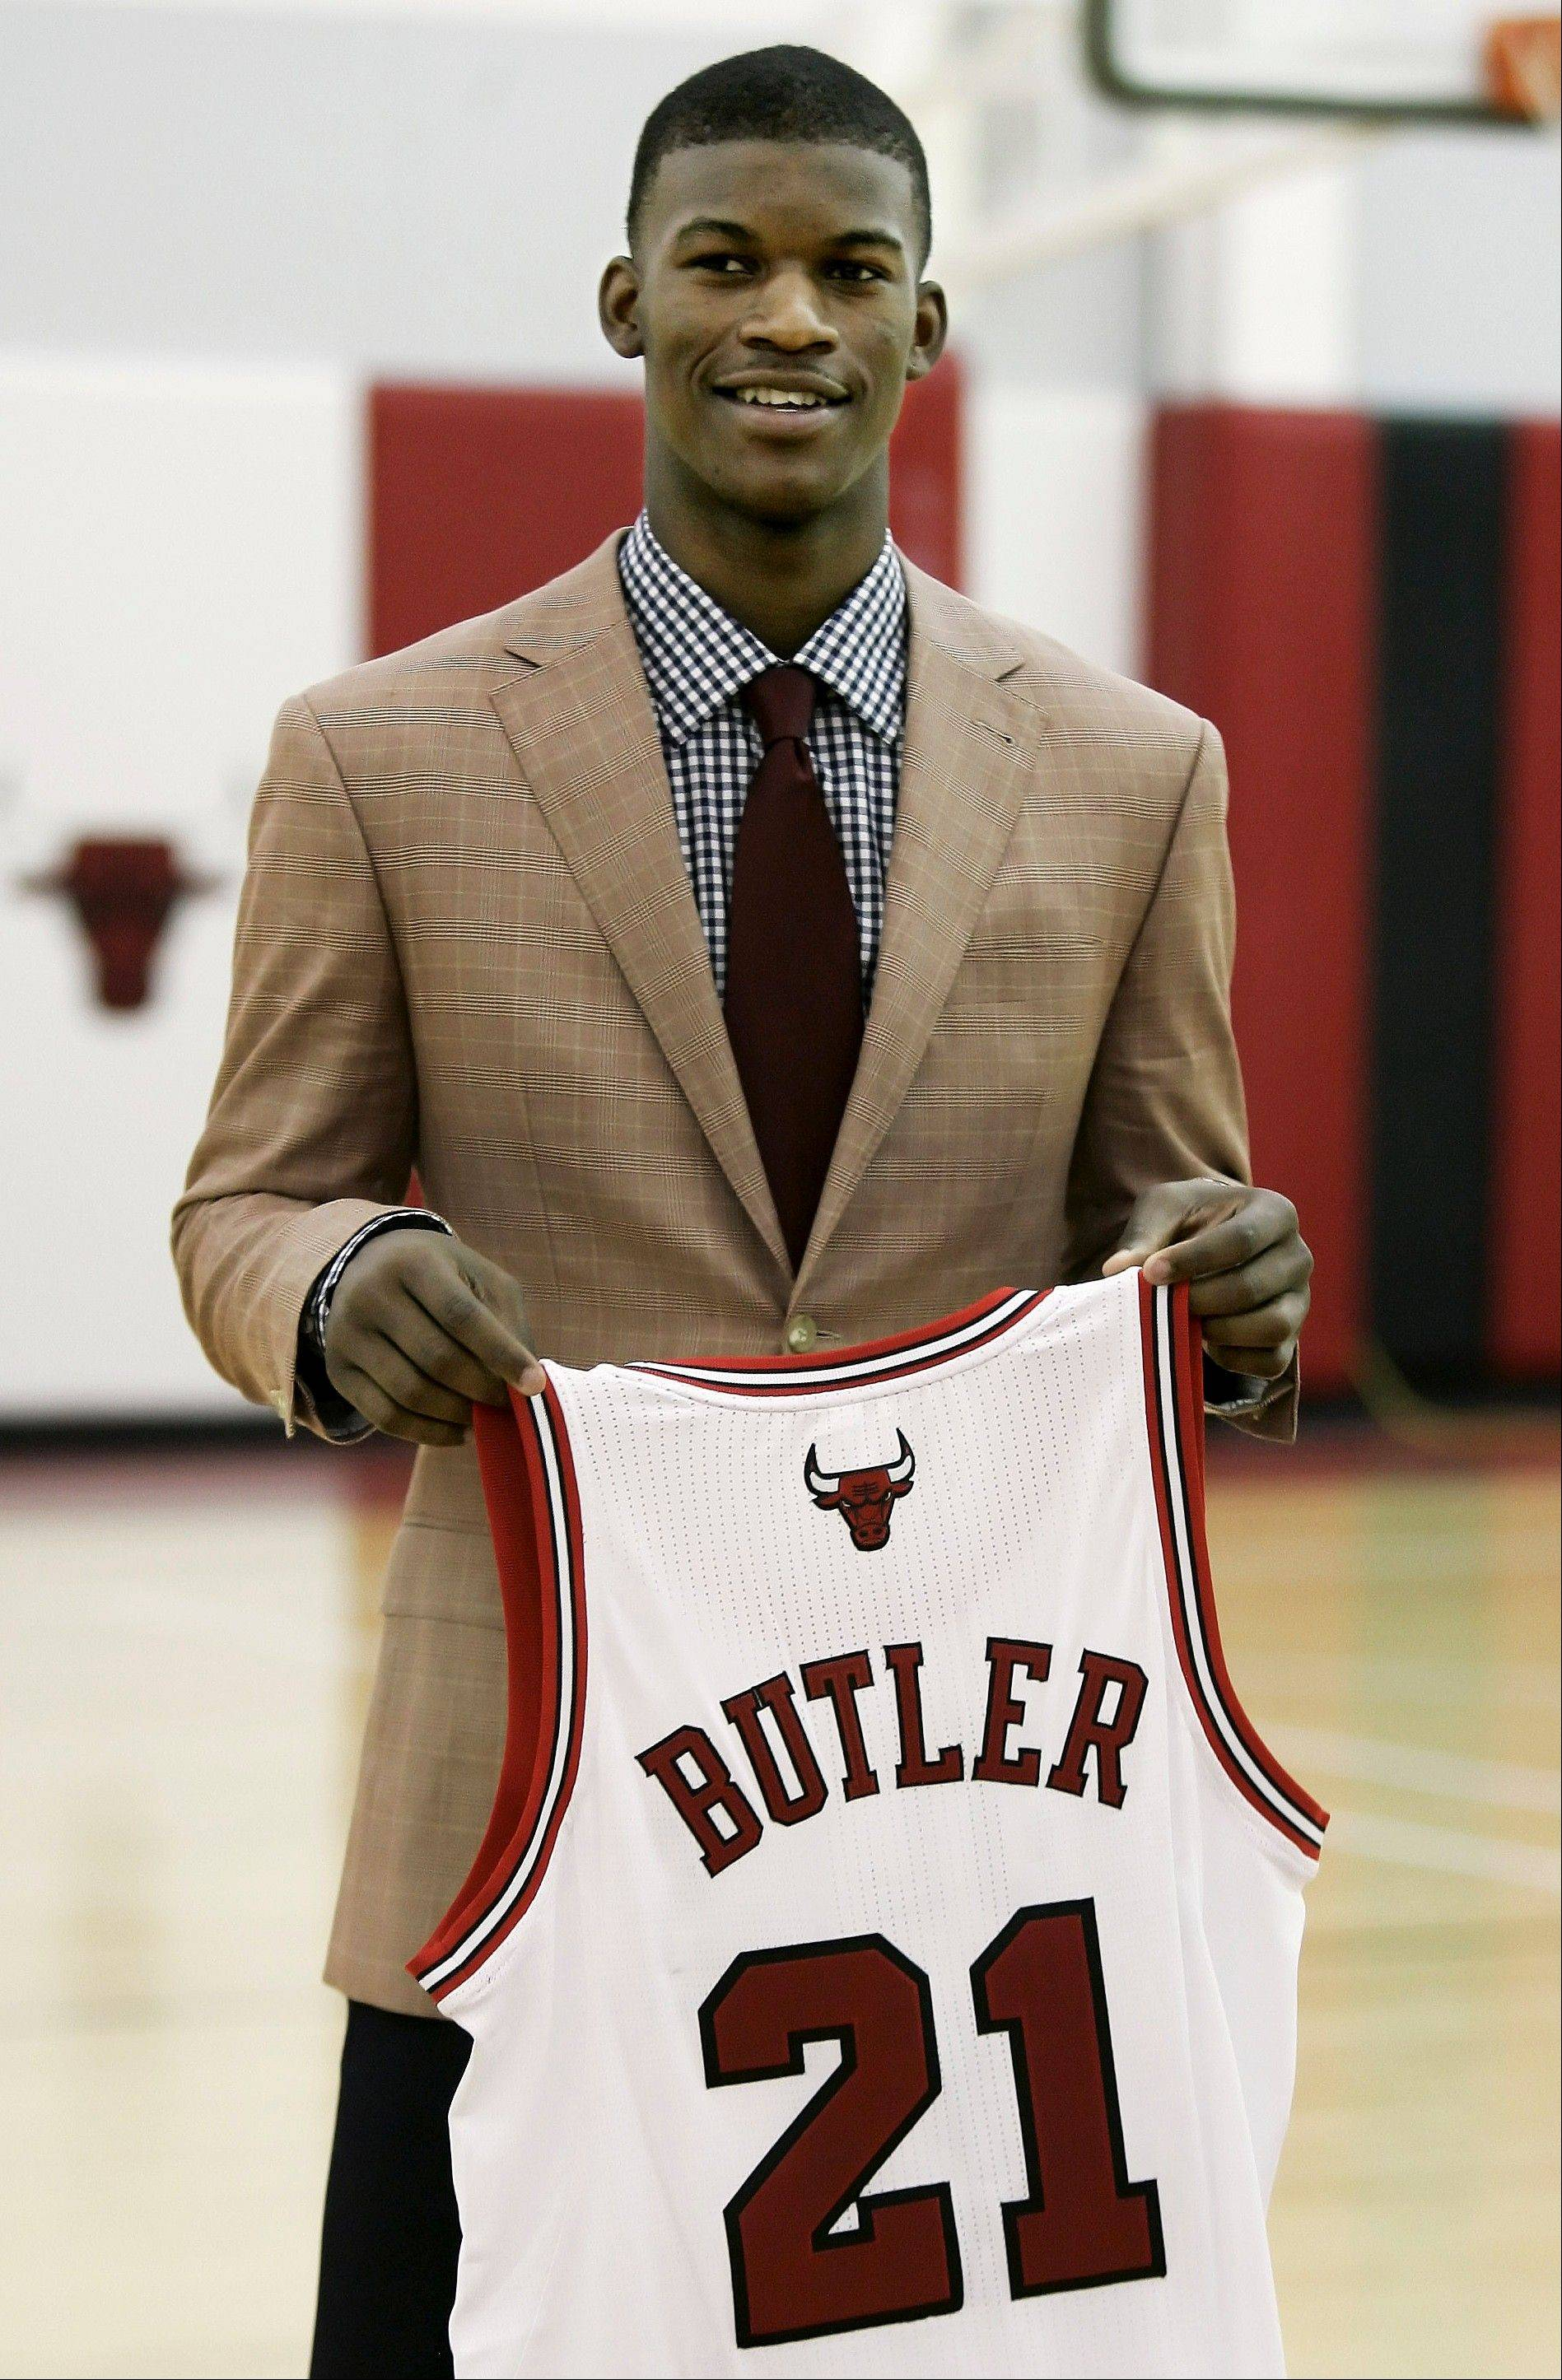 Jimmy Butler is introduced to the media Monday by the Chicago Bulls at the Berto Center in Deerfield.